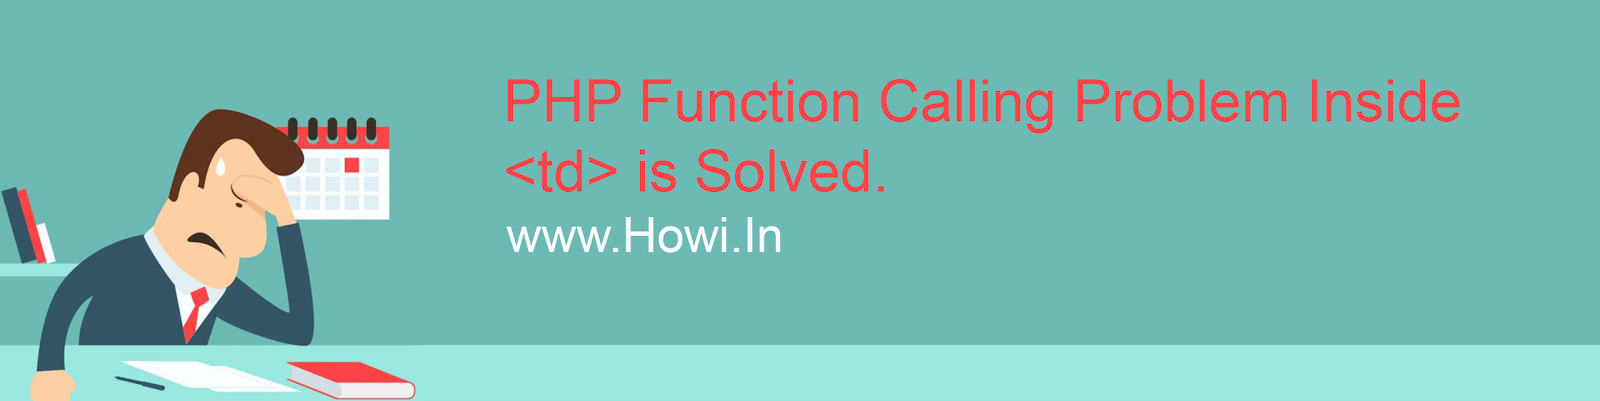 PHP Function Calling Inside Table Problem Solved